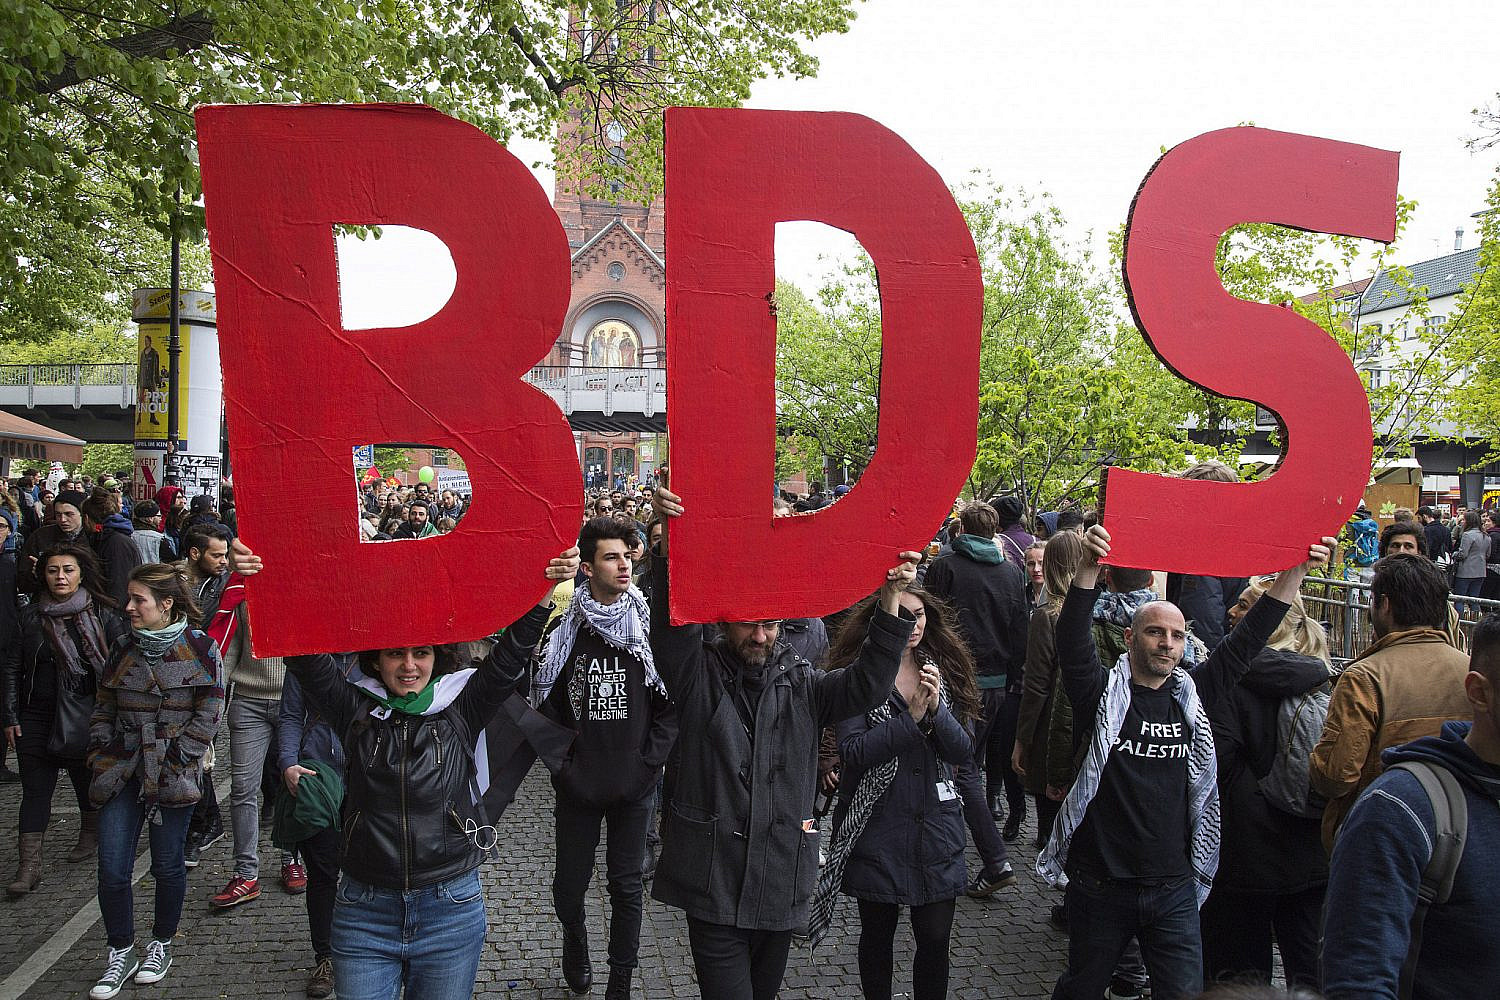 Activists holding a BDS sign march as part of the International Block during the May Day demonstration in Berlin, Germany, May 1, 2017. (Keren Manor/Activestills)